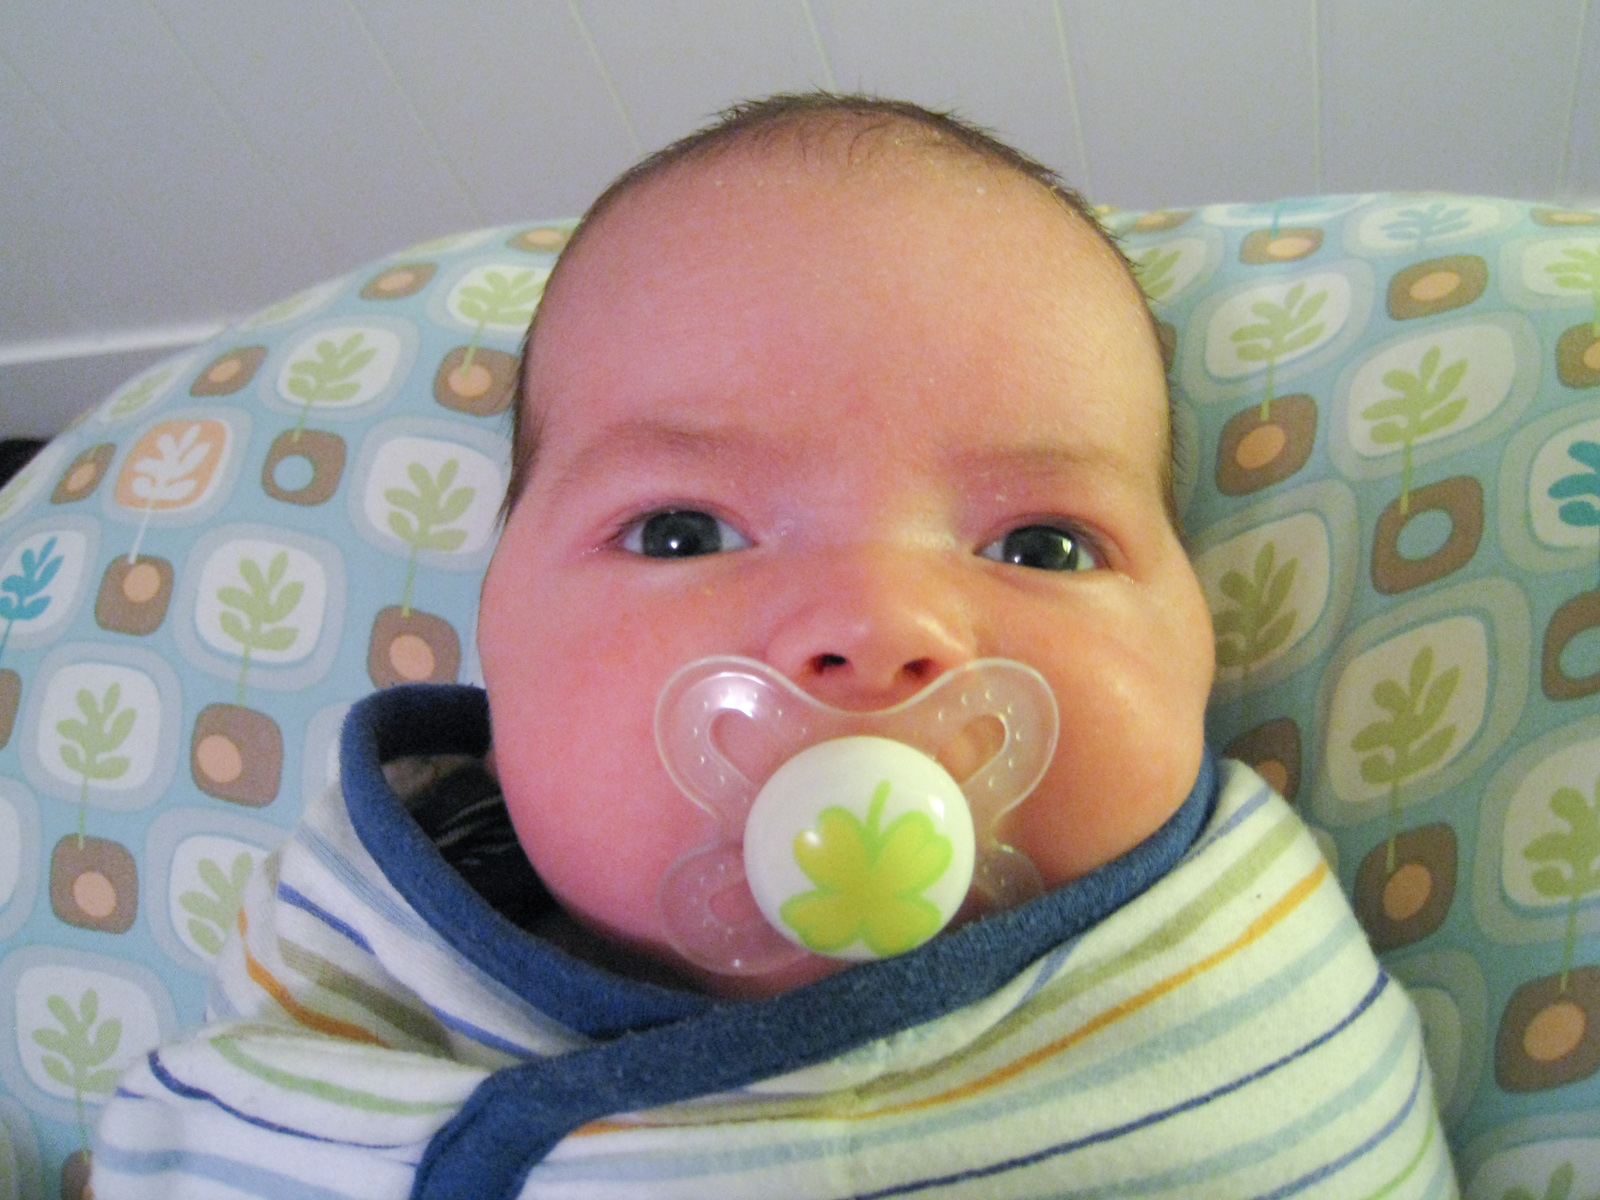 baby boy max, close-up with a pacifier, sits on a Boppy